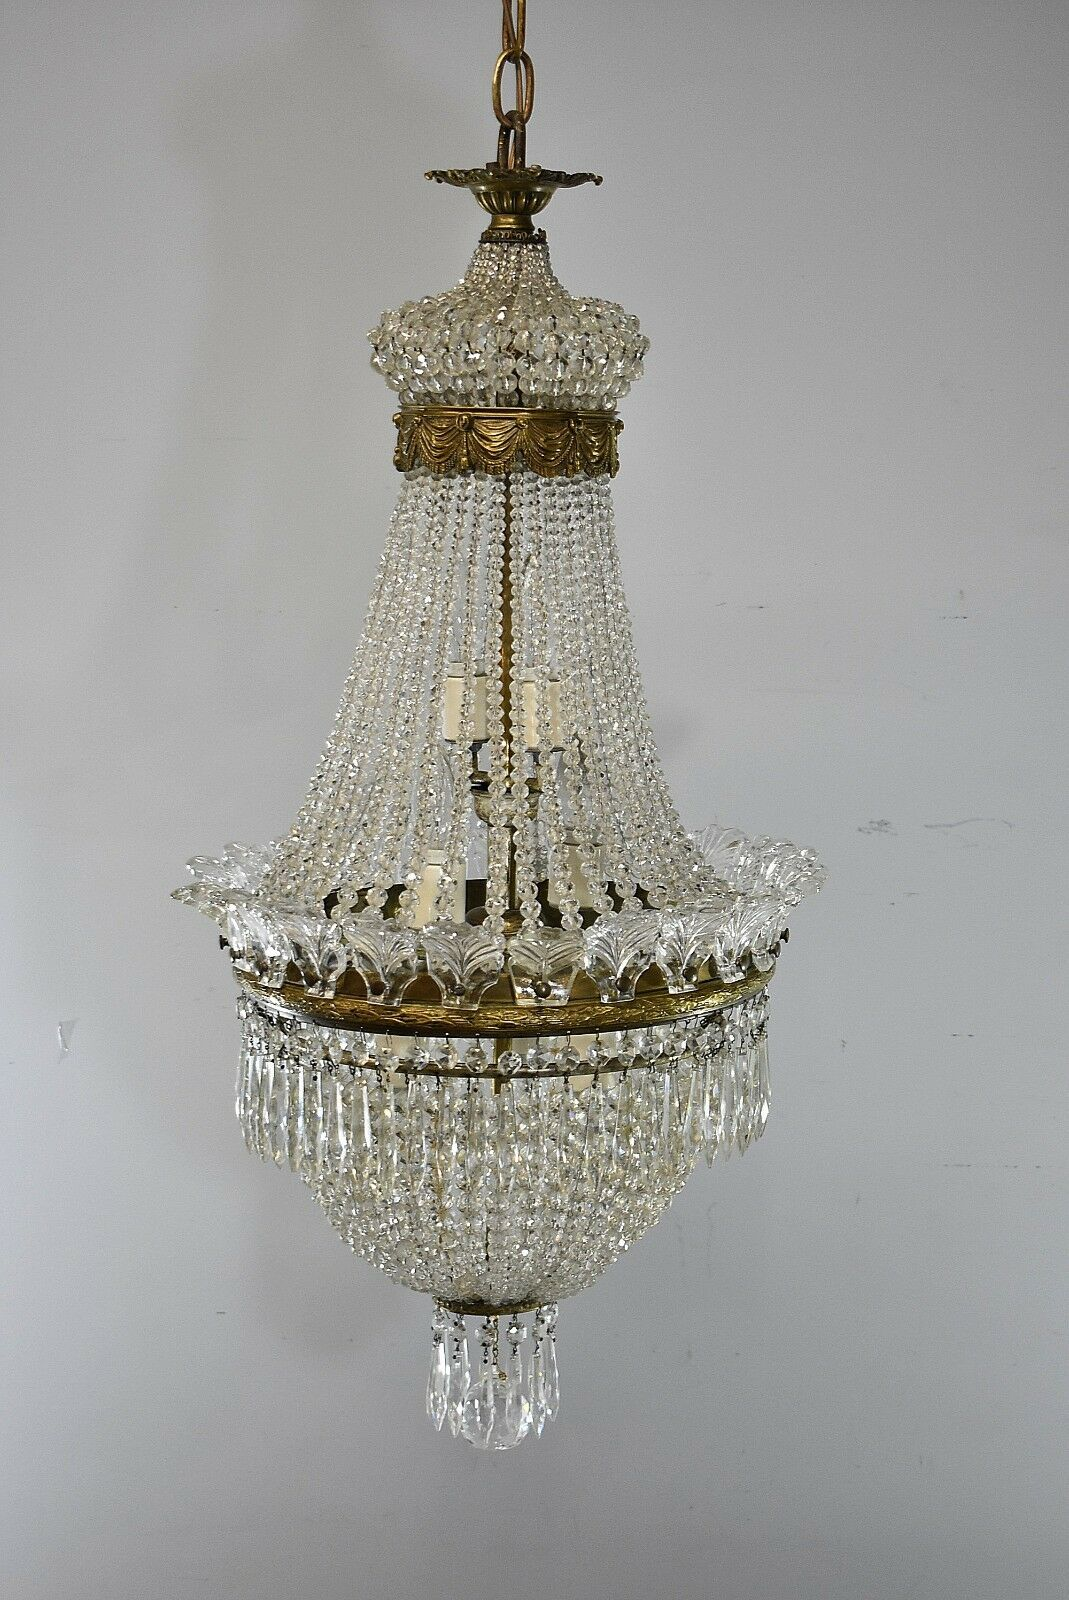 Antique French Style Crystal Chandelier Light Fixture With